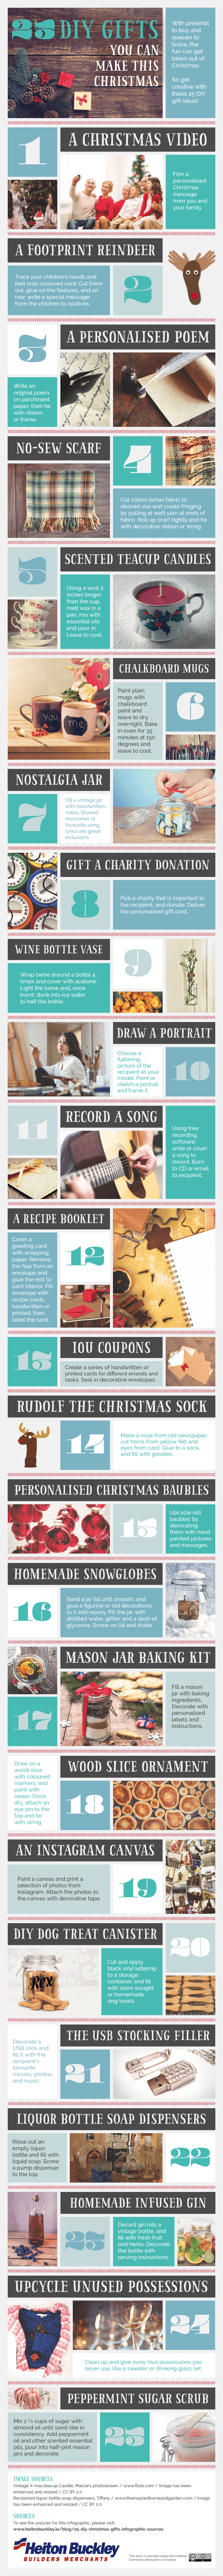 25 DIY Gifts You Can Make This Christmas by Heiton Buckley